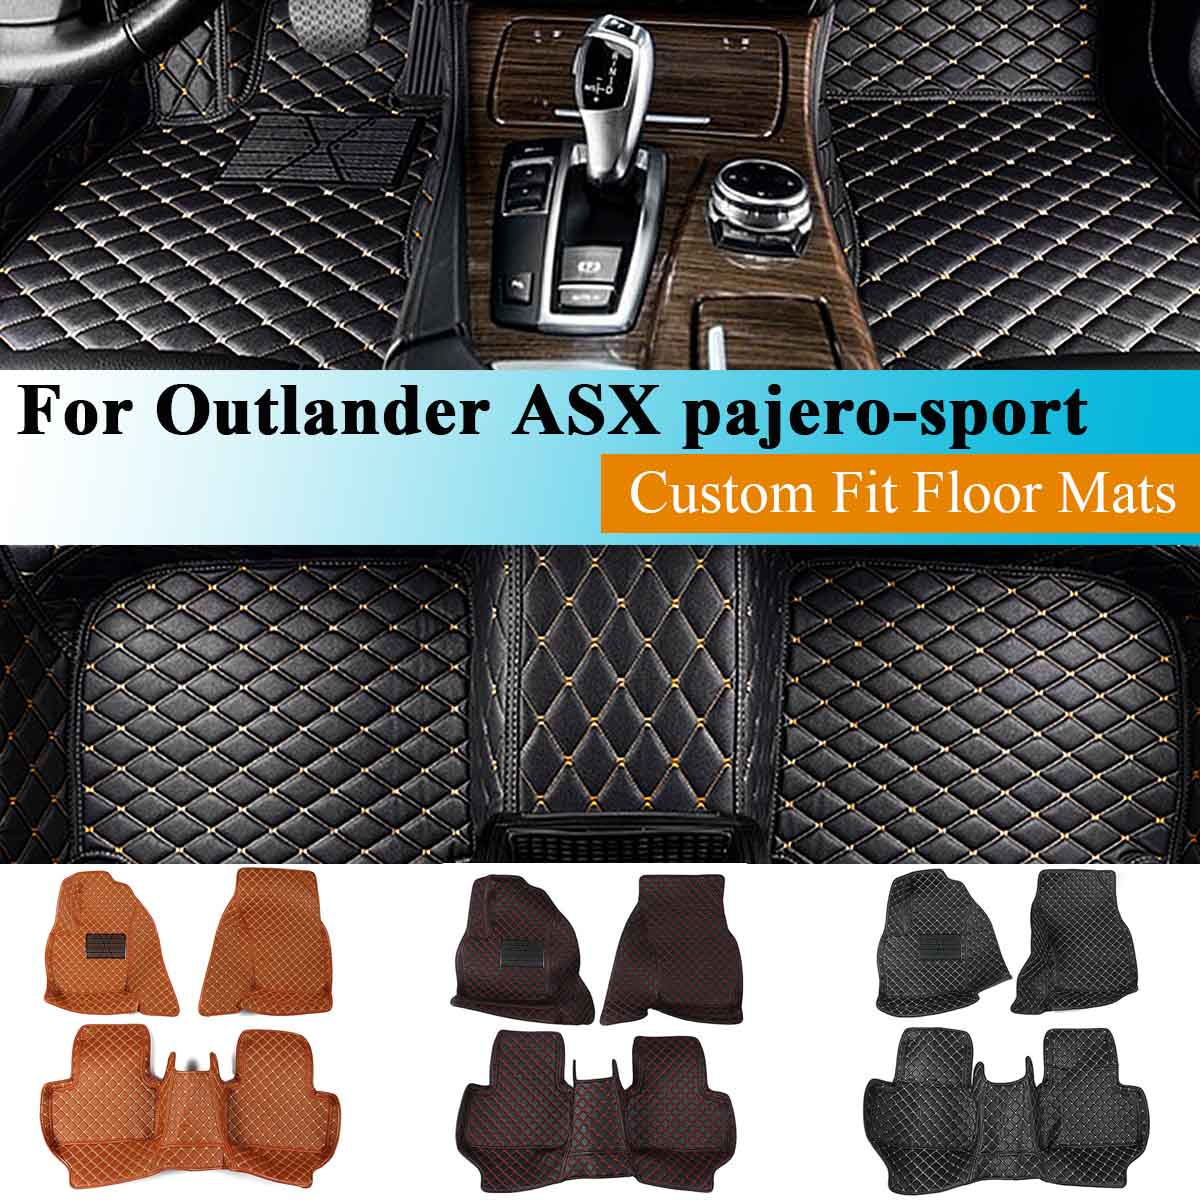 Car Waterproof Floor Mats For Mitsubishi Outlander Pajero Sport Asx 2011 2012 2013 2014 2015 Car Accessories Floor Pad Foot Pad